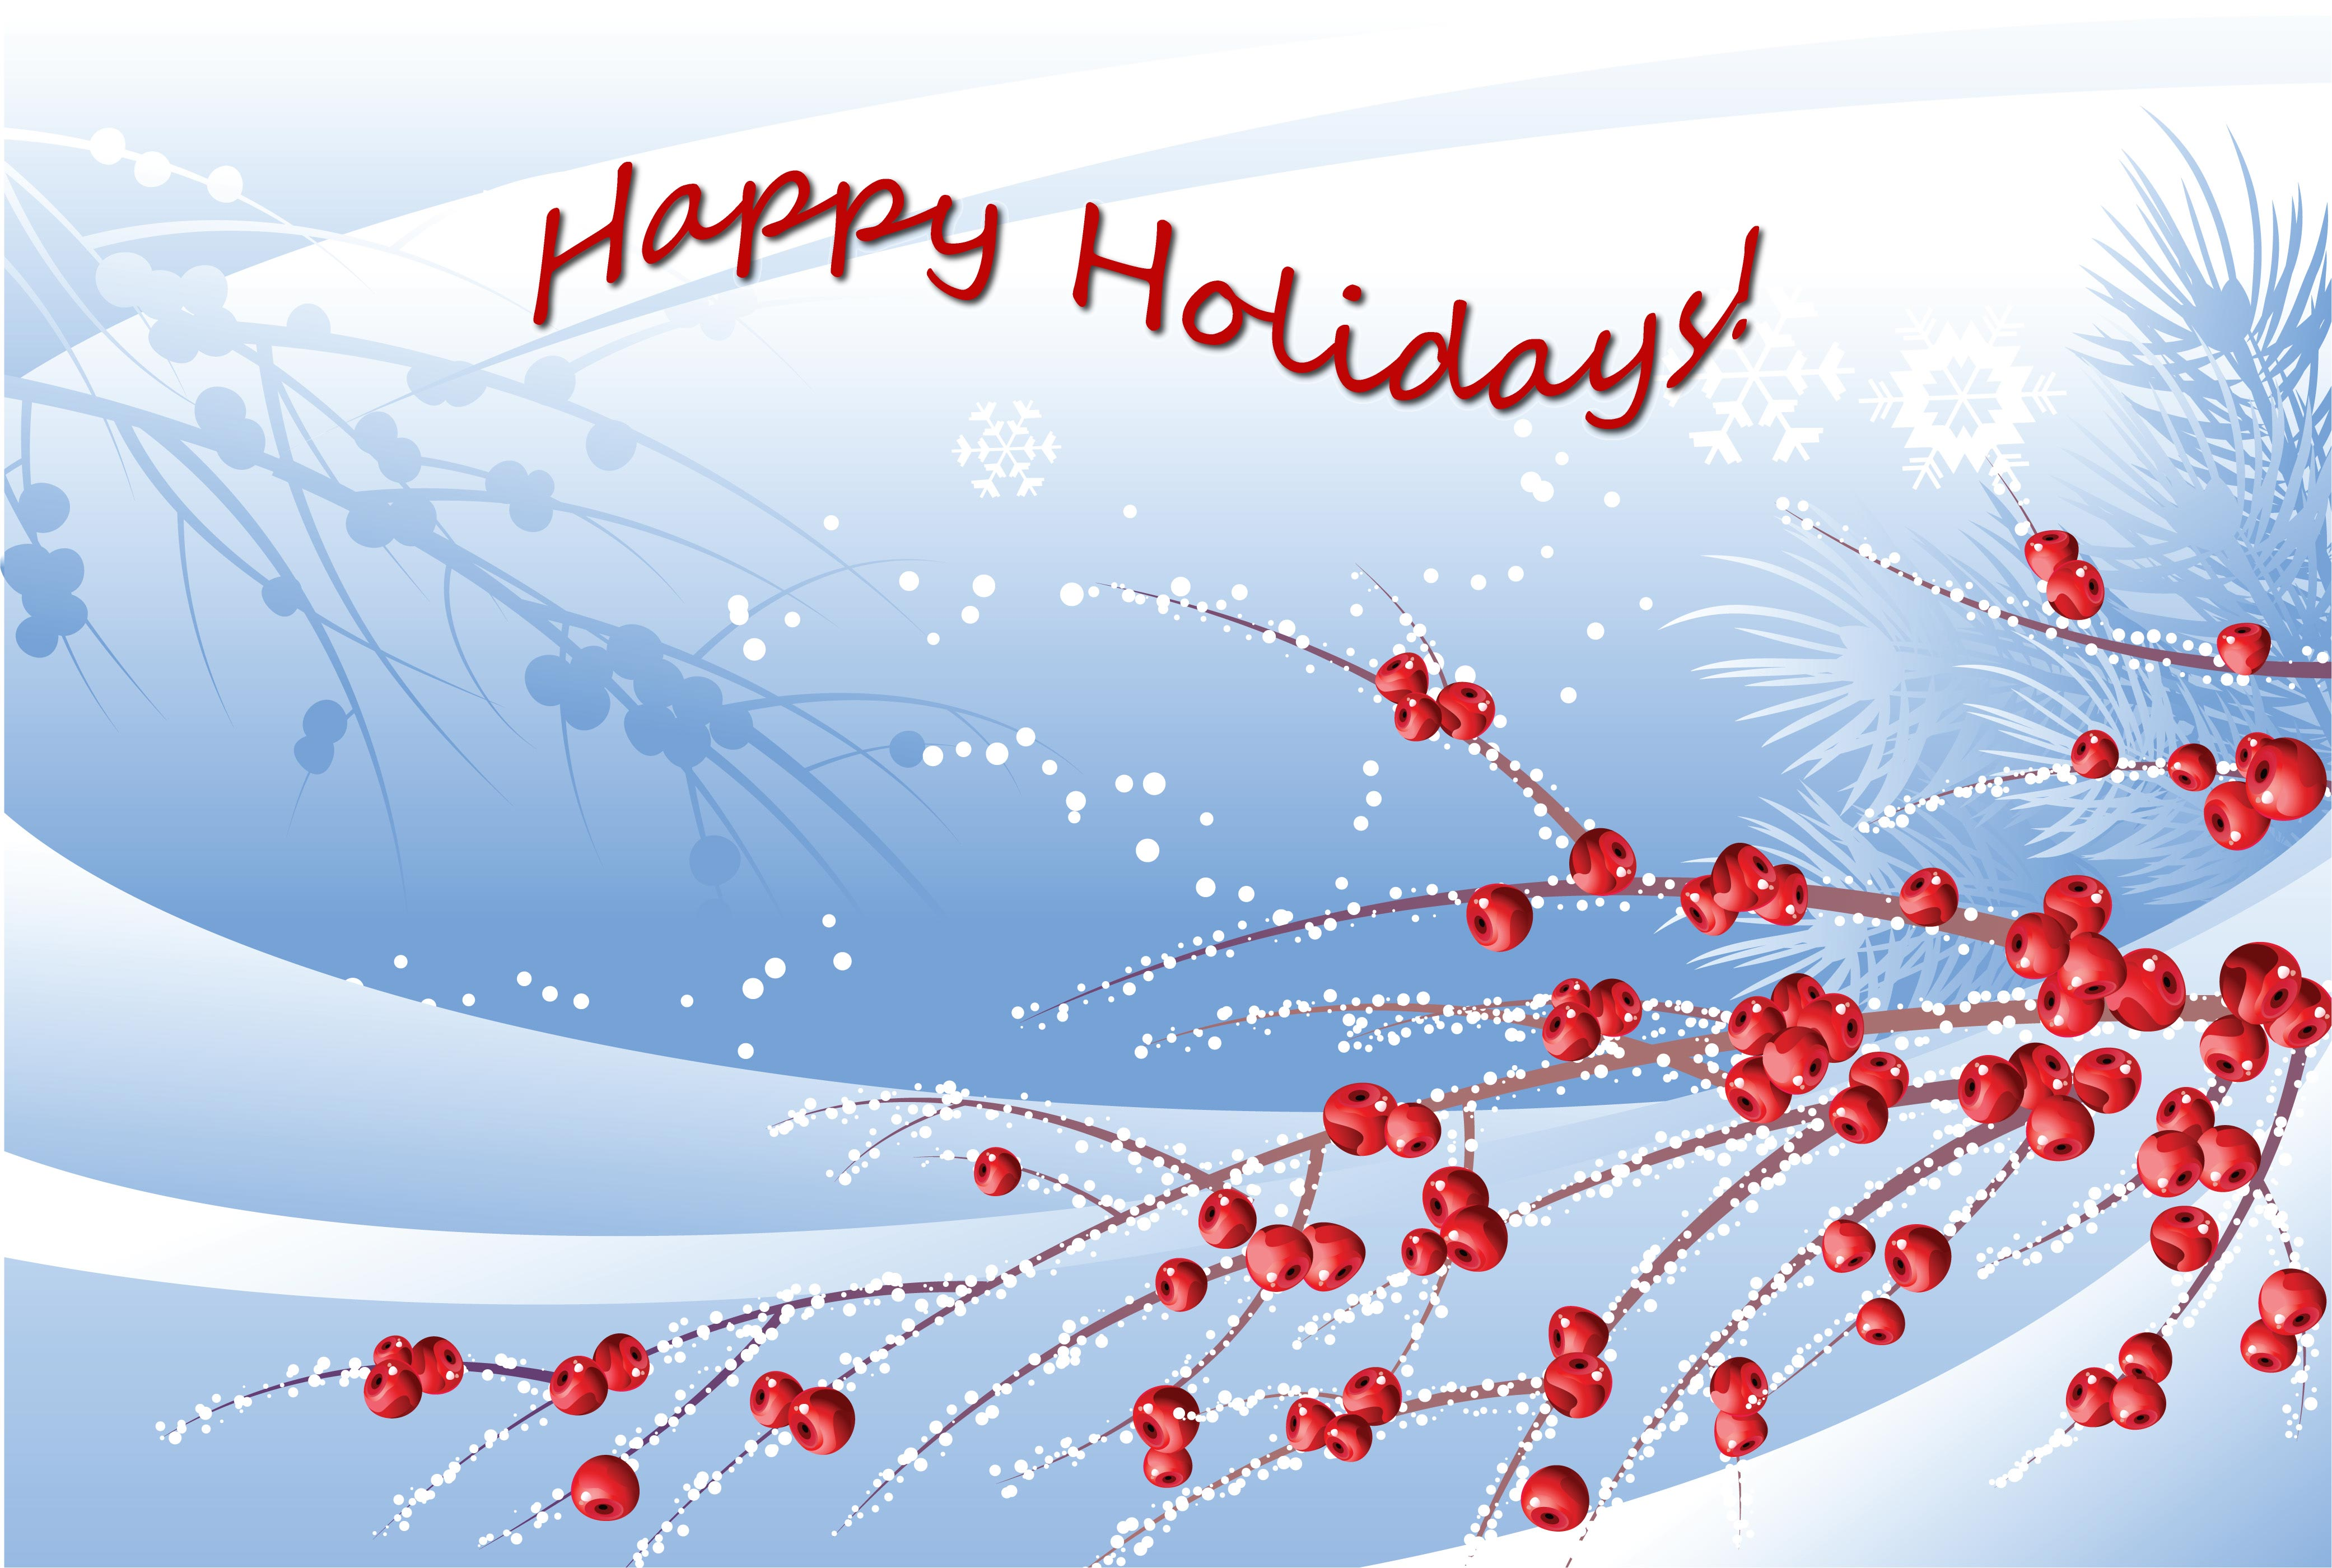 Nice Wallpapers Happy New Year Greetings Quotes 1080p Happy Holiday Wallpapers Hd Pixelstalk Net